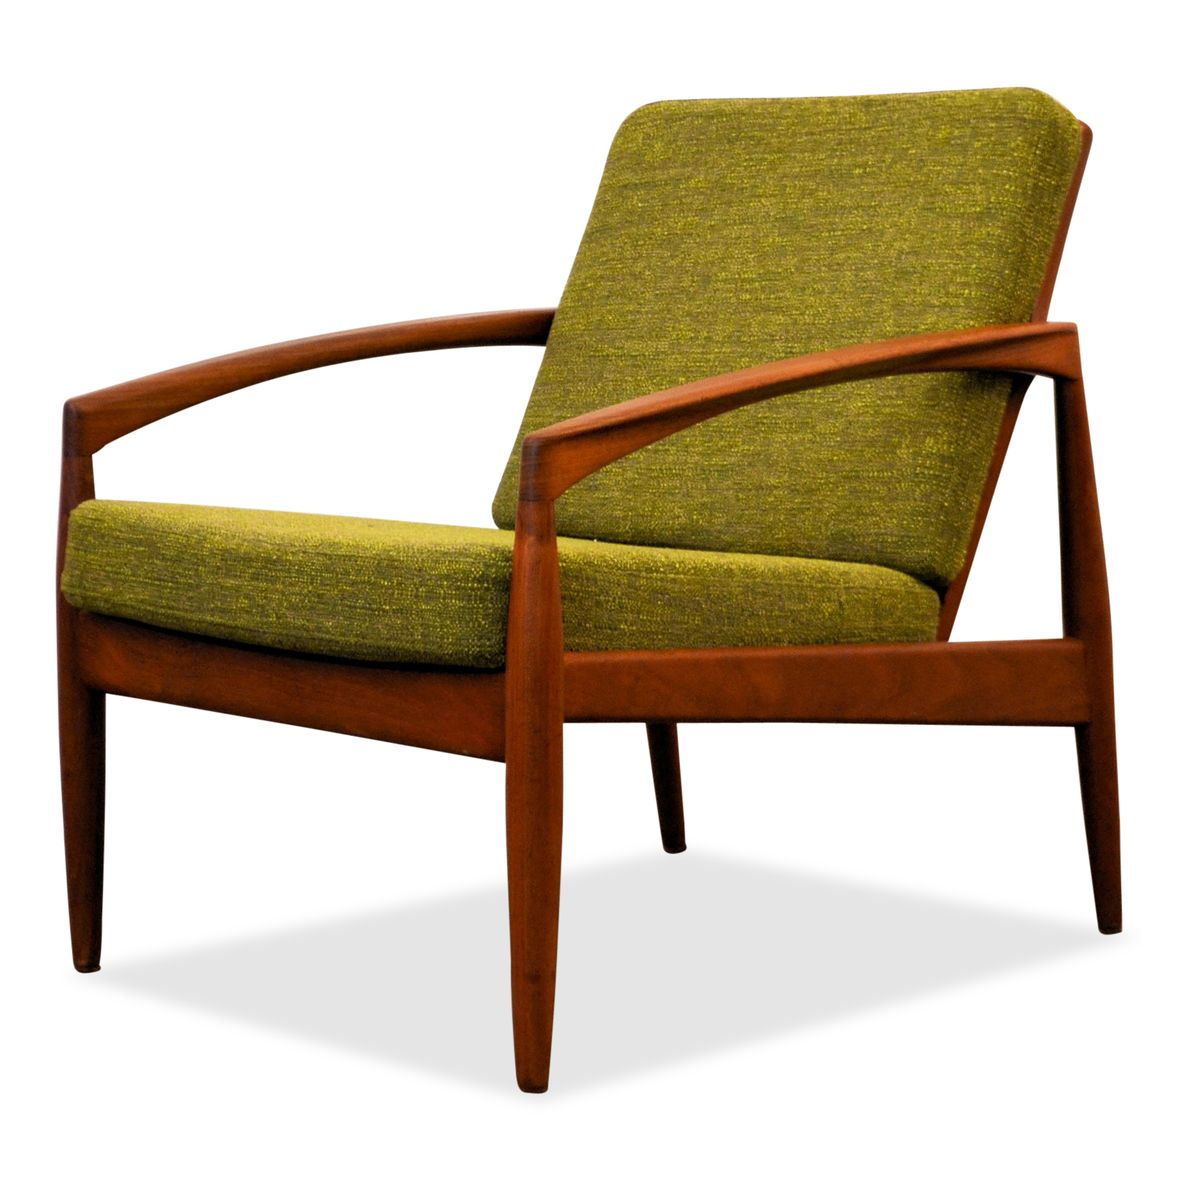 Model 121 Teak Lounge Chair By Kai Kristiansen For Magnus Olesen 1950s For Sale At Pamono